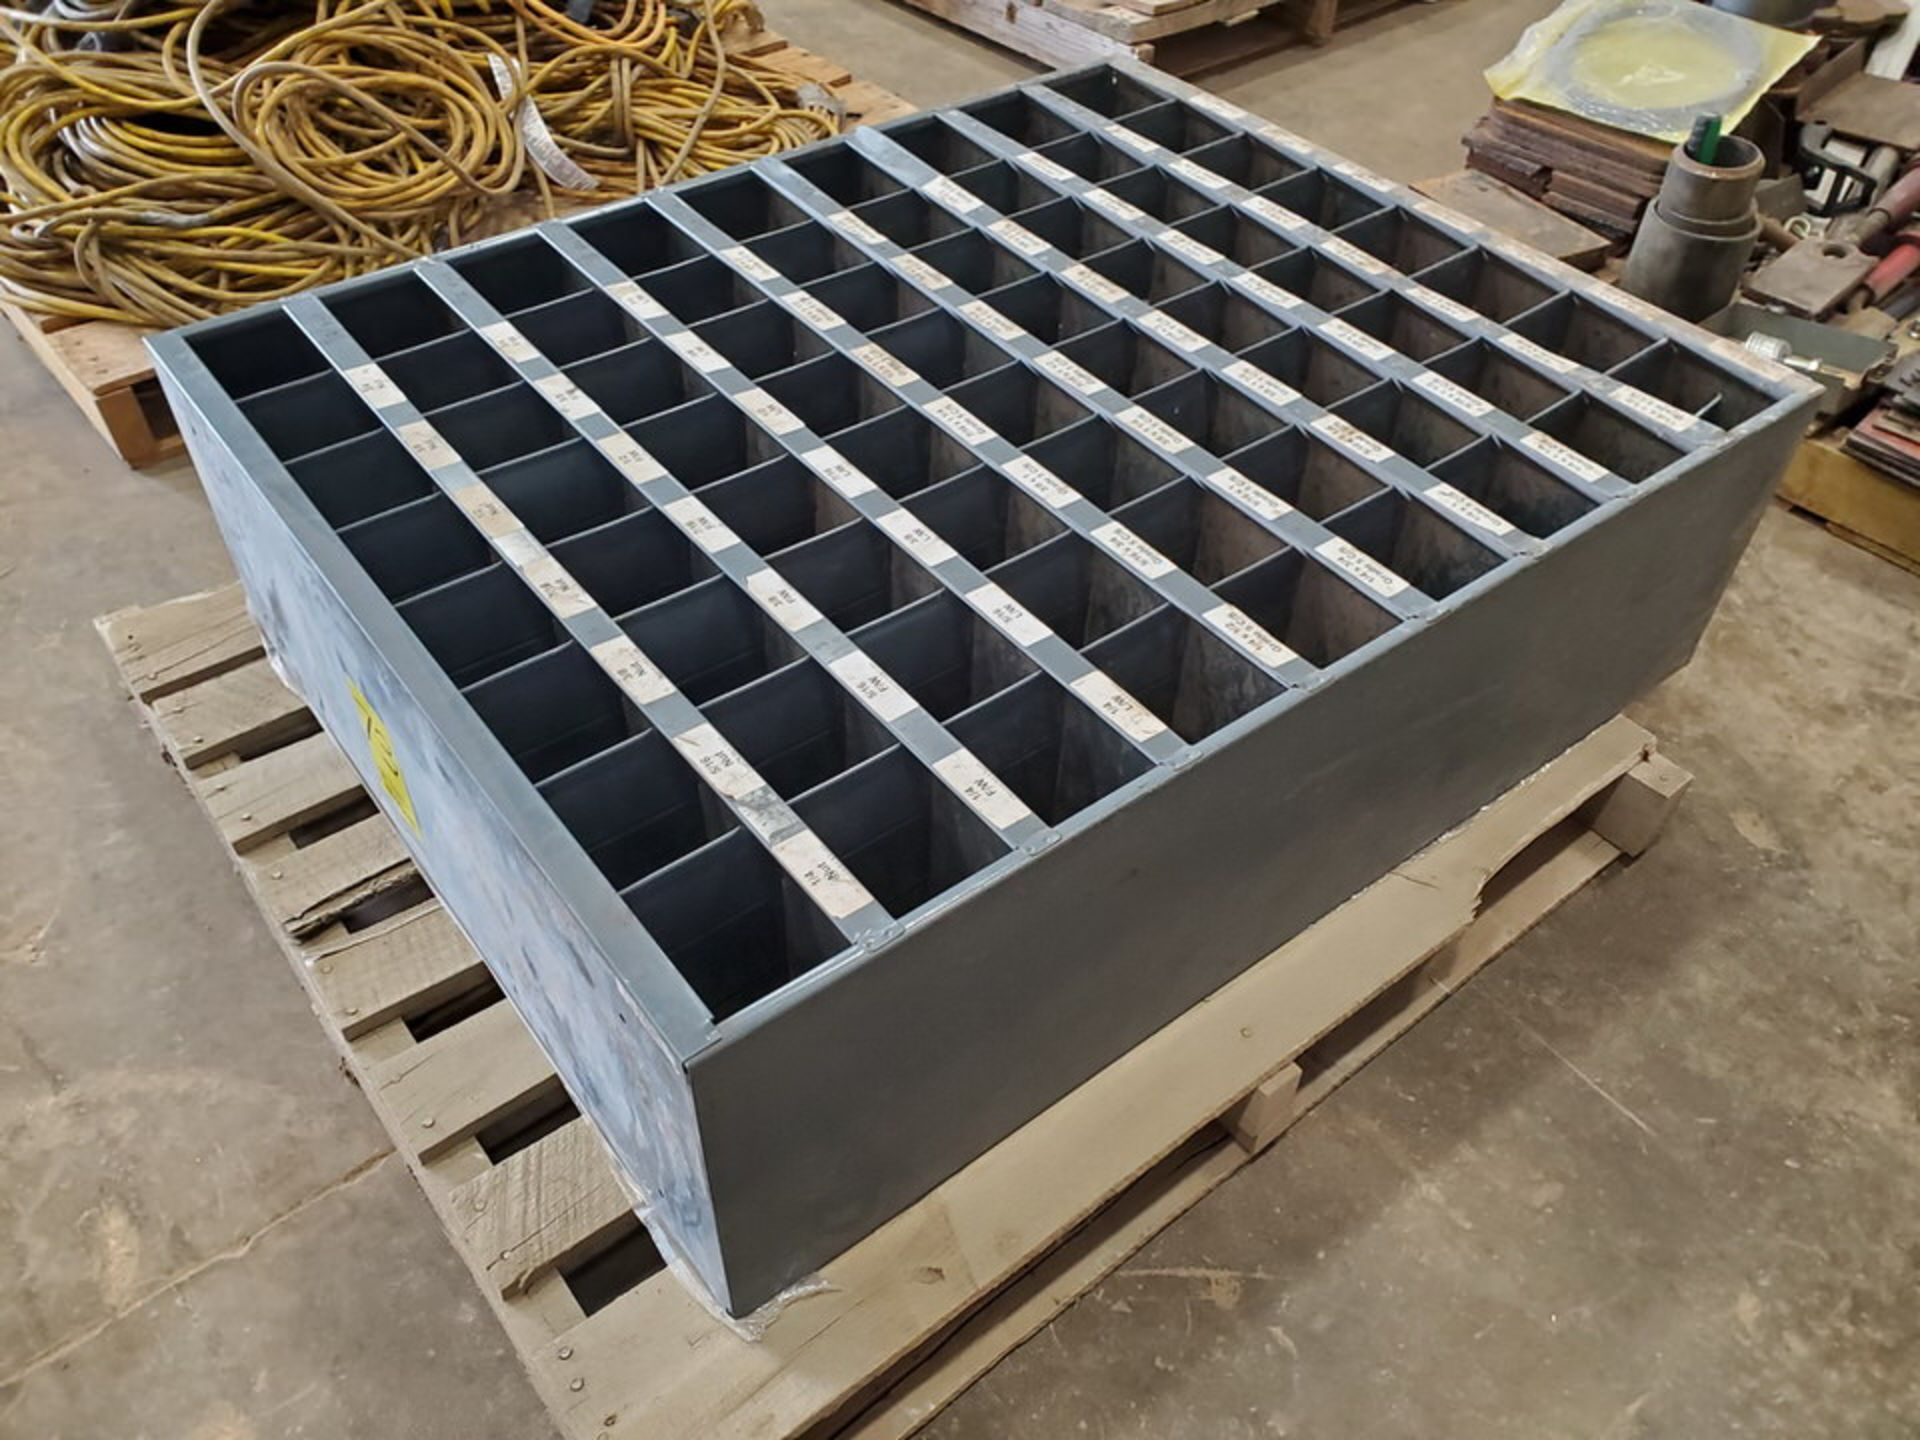 """(2) Parts Bins To Include But Not Limited To: Nuts, Bolts, Washers, etc. Size Range: 1/4""""-4"""" - Image 6 of 15"""